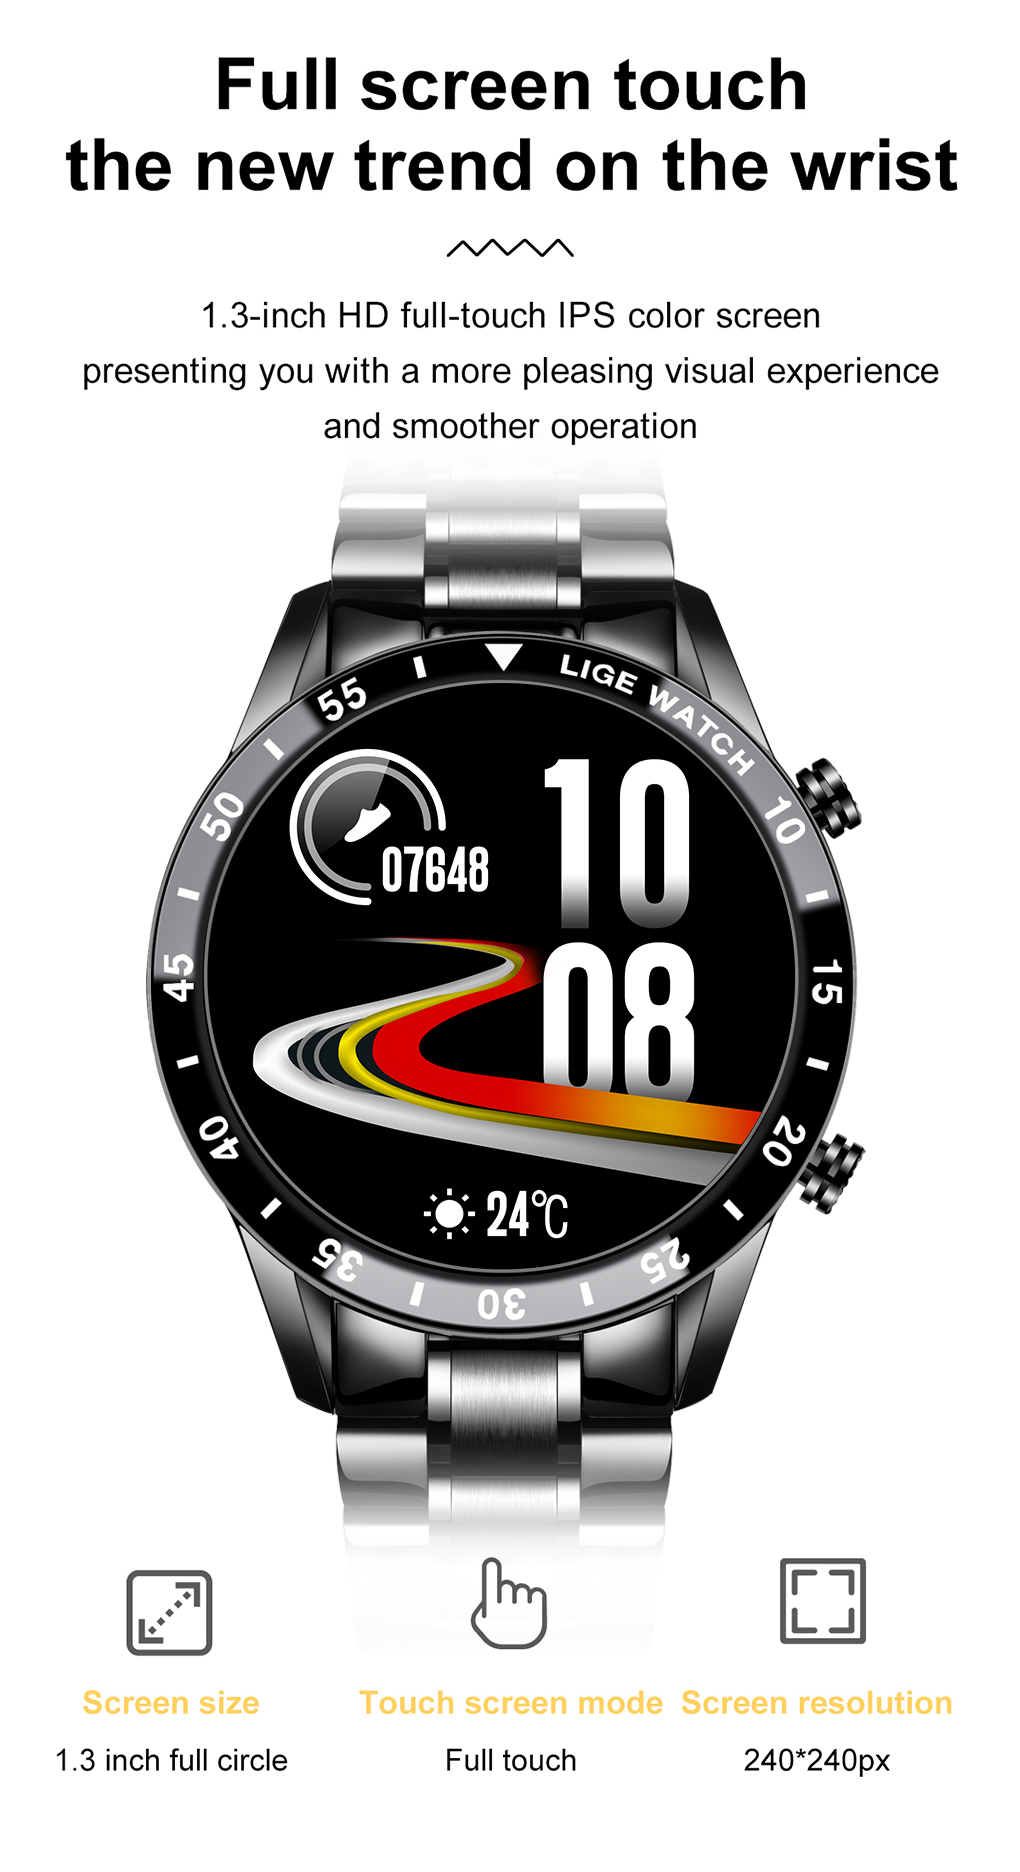 H27e858ff637e4a9781f3b6fd35f211473 LIGE 2021 New Smart Watch Men Full Touch Screen Sports Fitness Watch Waterproof Bluetooth Call For Android iOS Smartwatch Mens